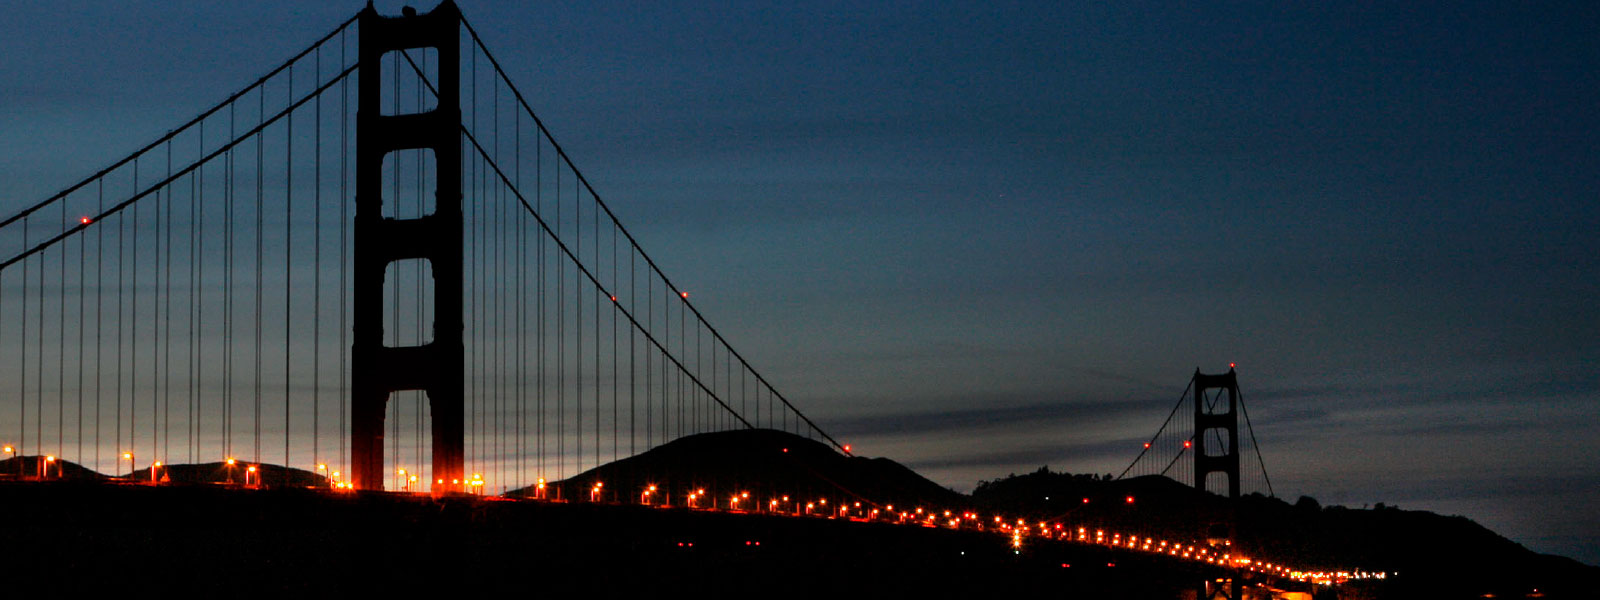 Golden Gate Bridge without lights